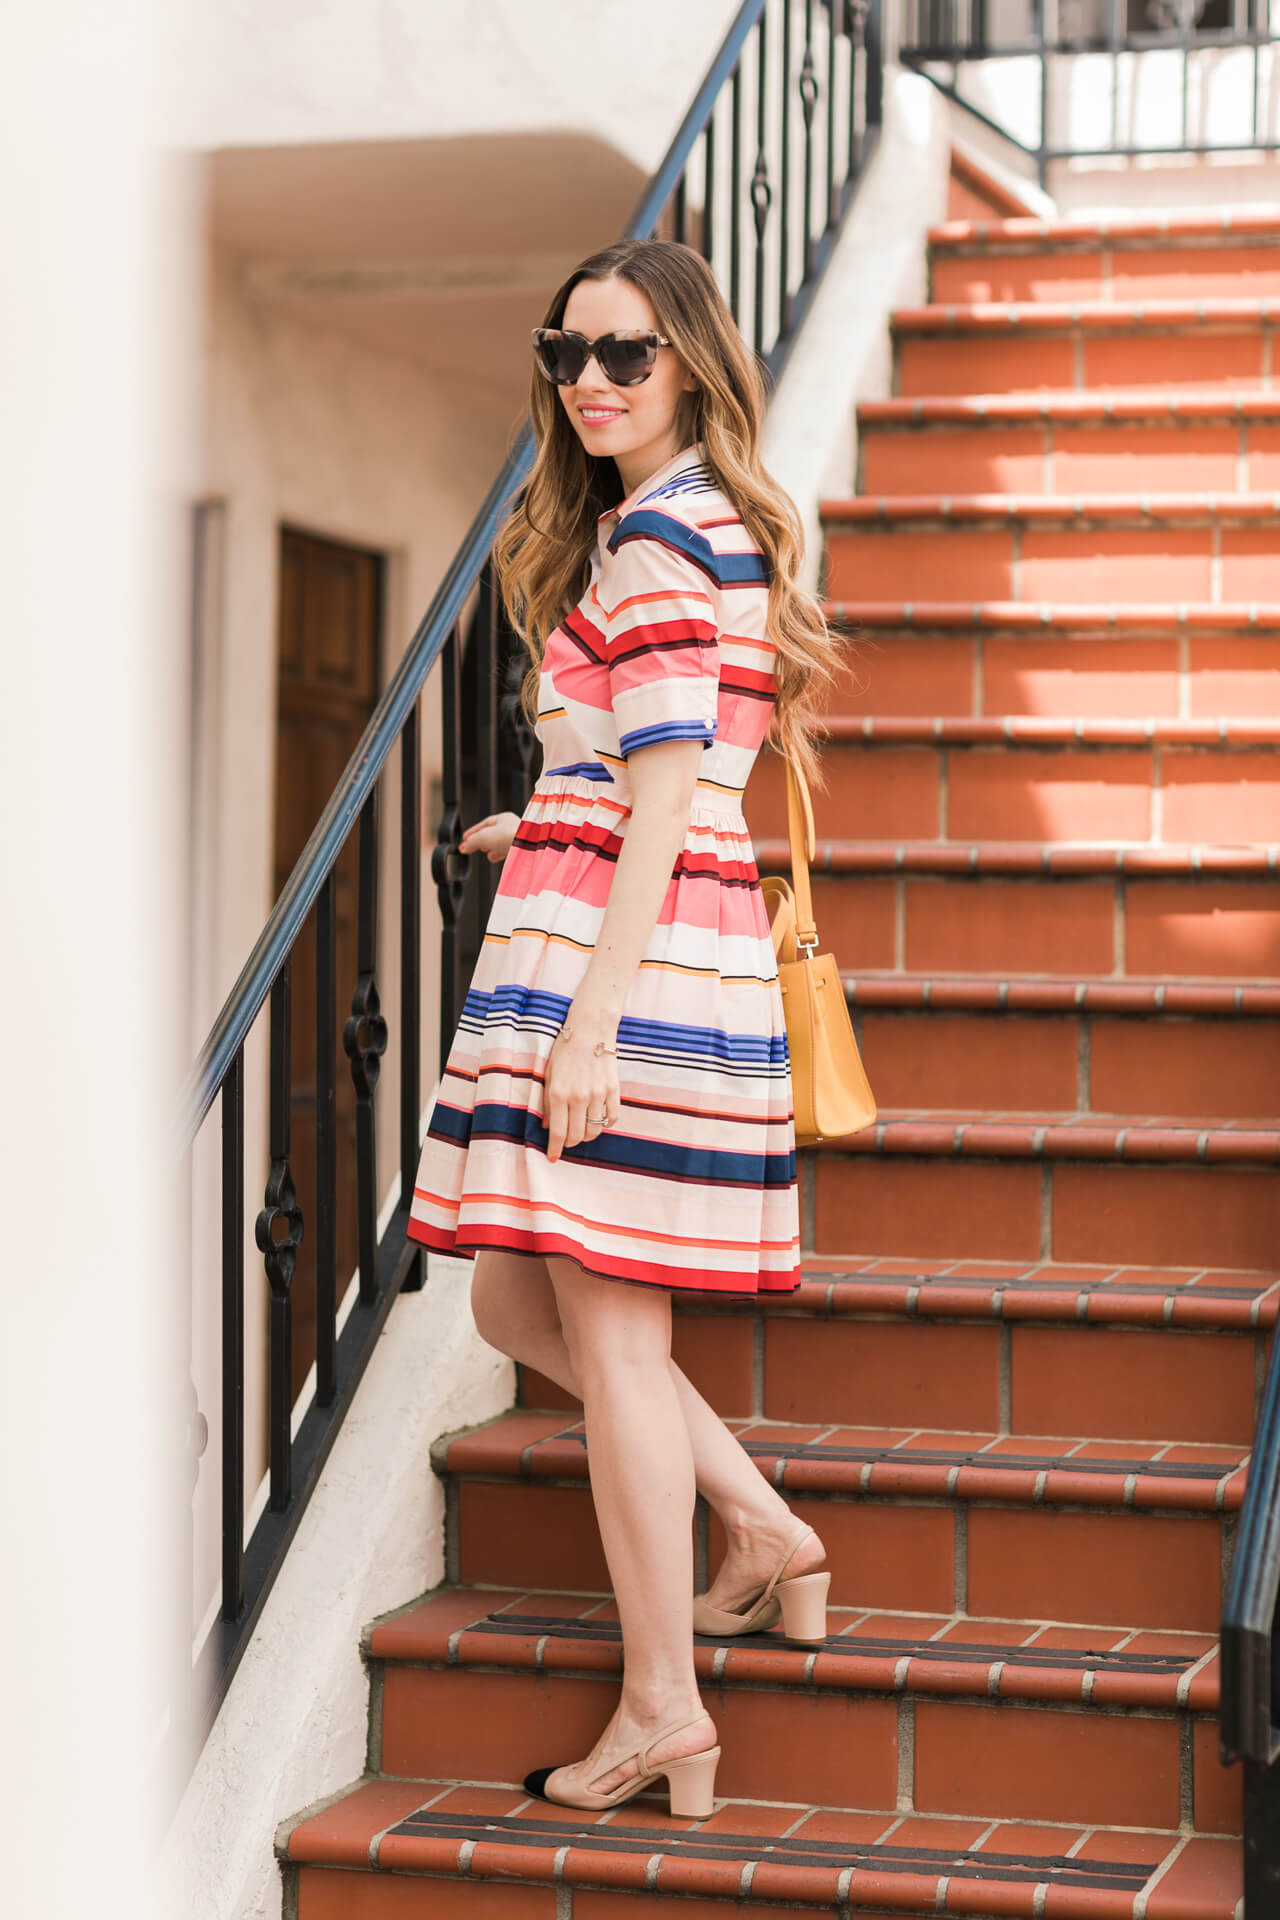 a fun colorful striped shirtdress for spring  - kate spade berber striped shirtdress